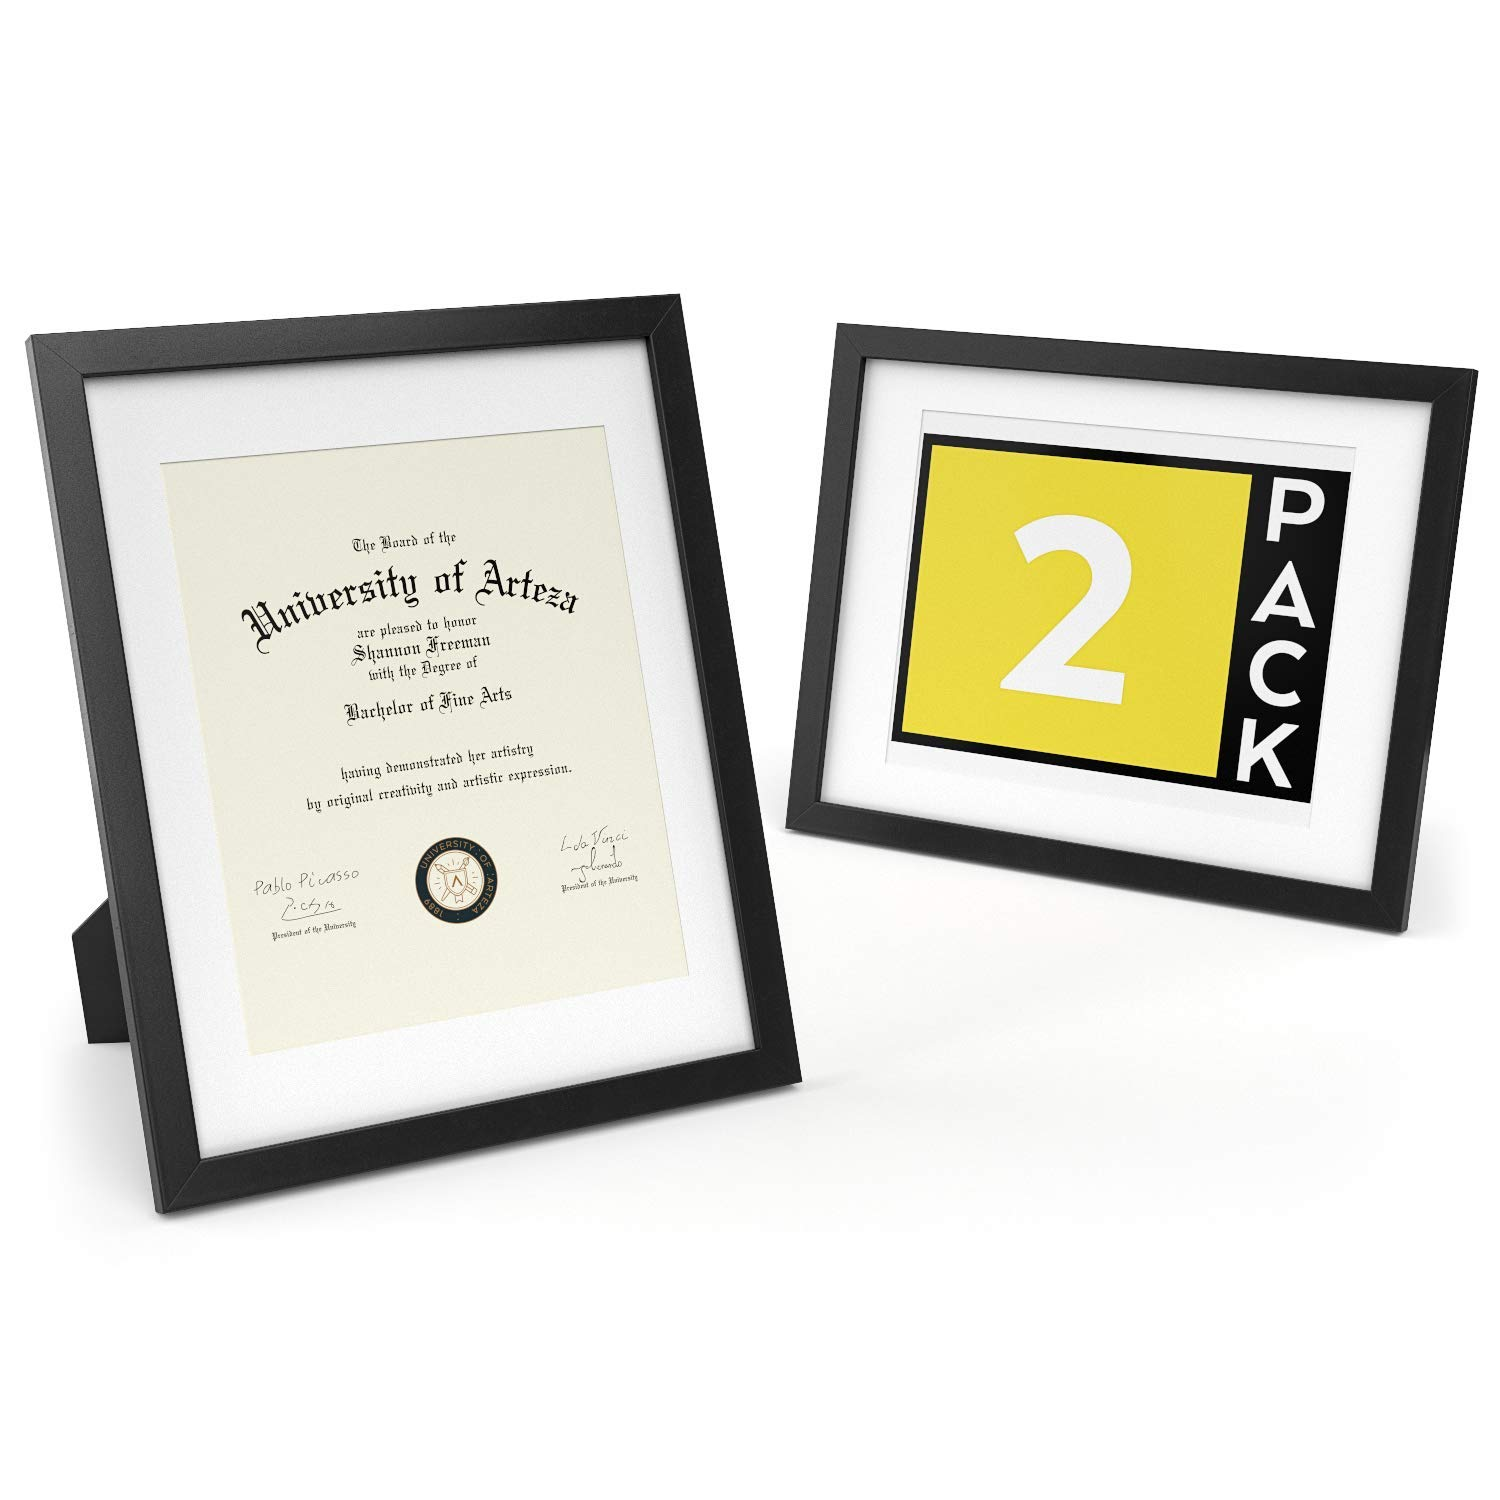 ARTEZA Document and Certificate Frames - Display 11'' x 14'' Pictures w/o Mat or 8'' x 10'' Photos w/Mat - 2 Pack - Wood Finish Picture Frames - Pure Glass Front - for Wall - Gallery Wall